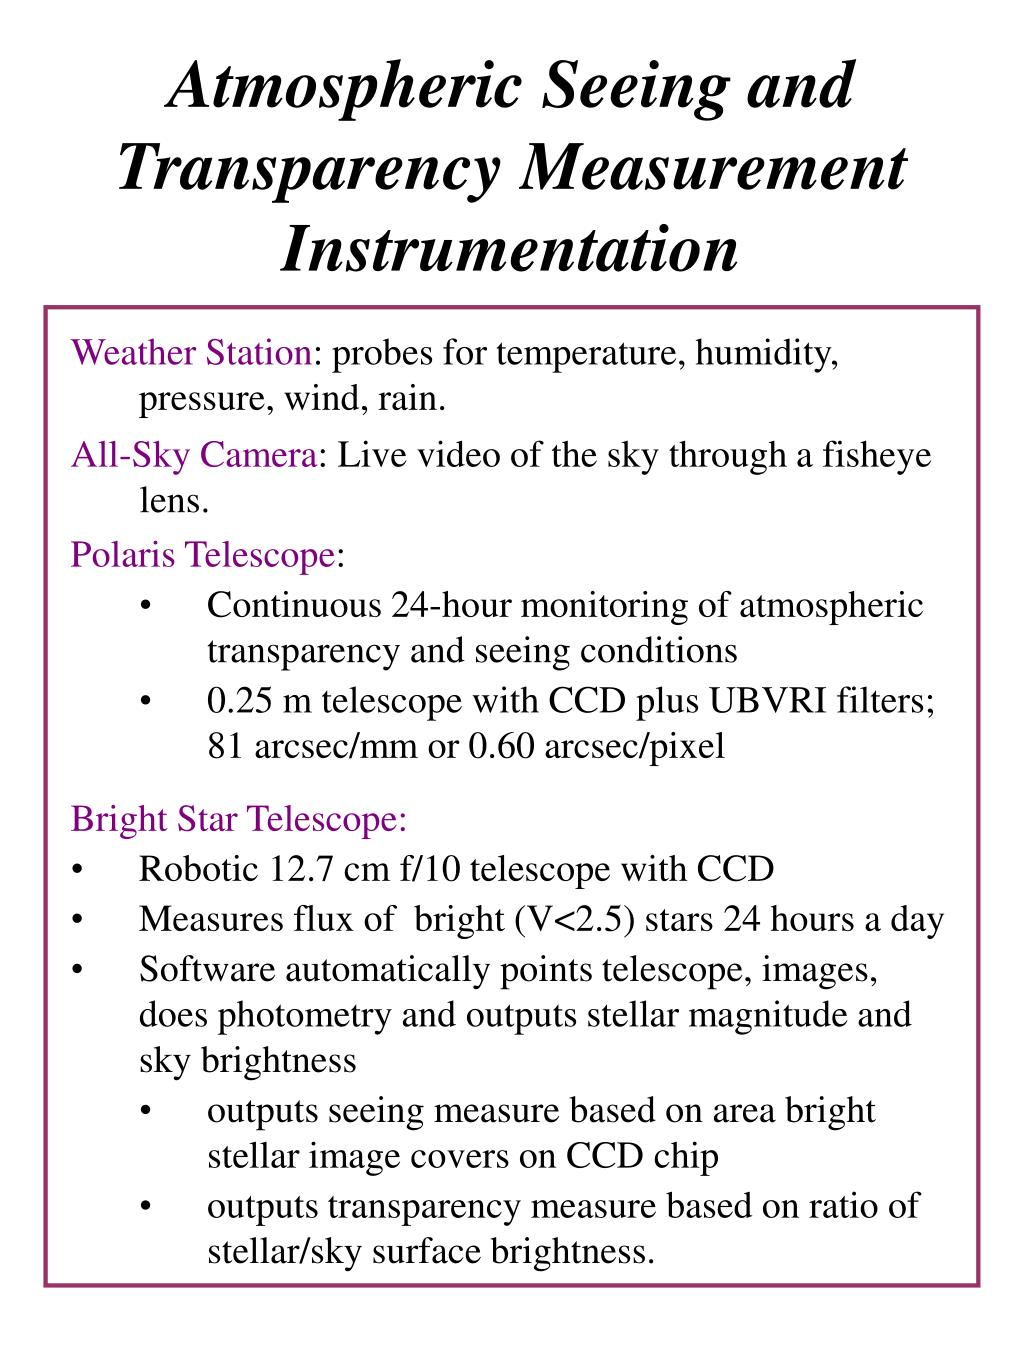 Atmospheric Seeing and Transparency Measurement Instrumentation